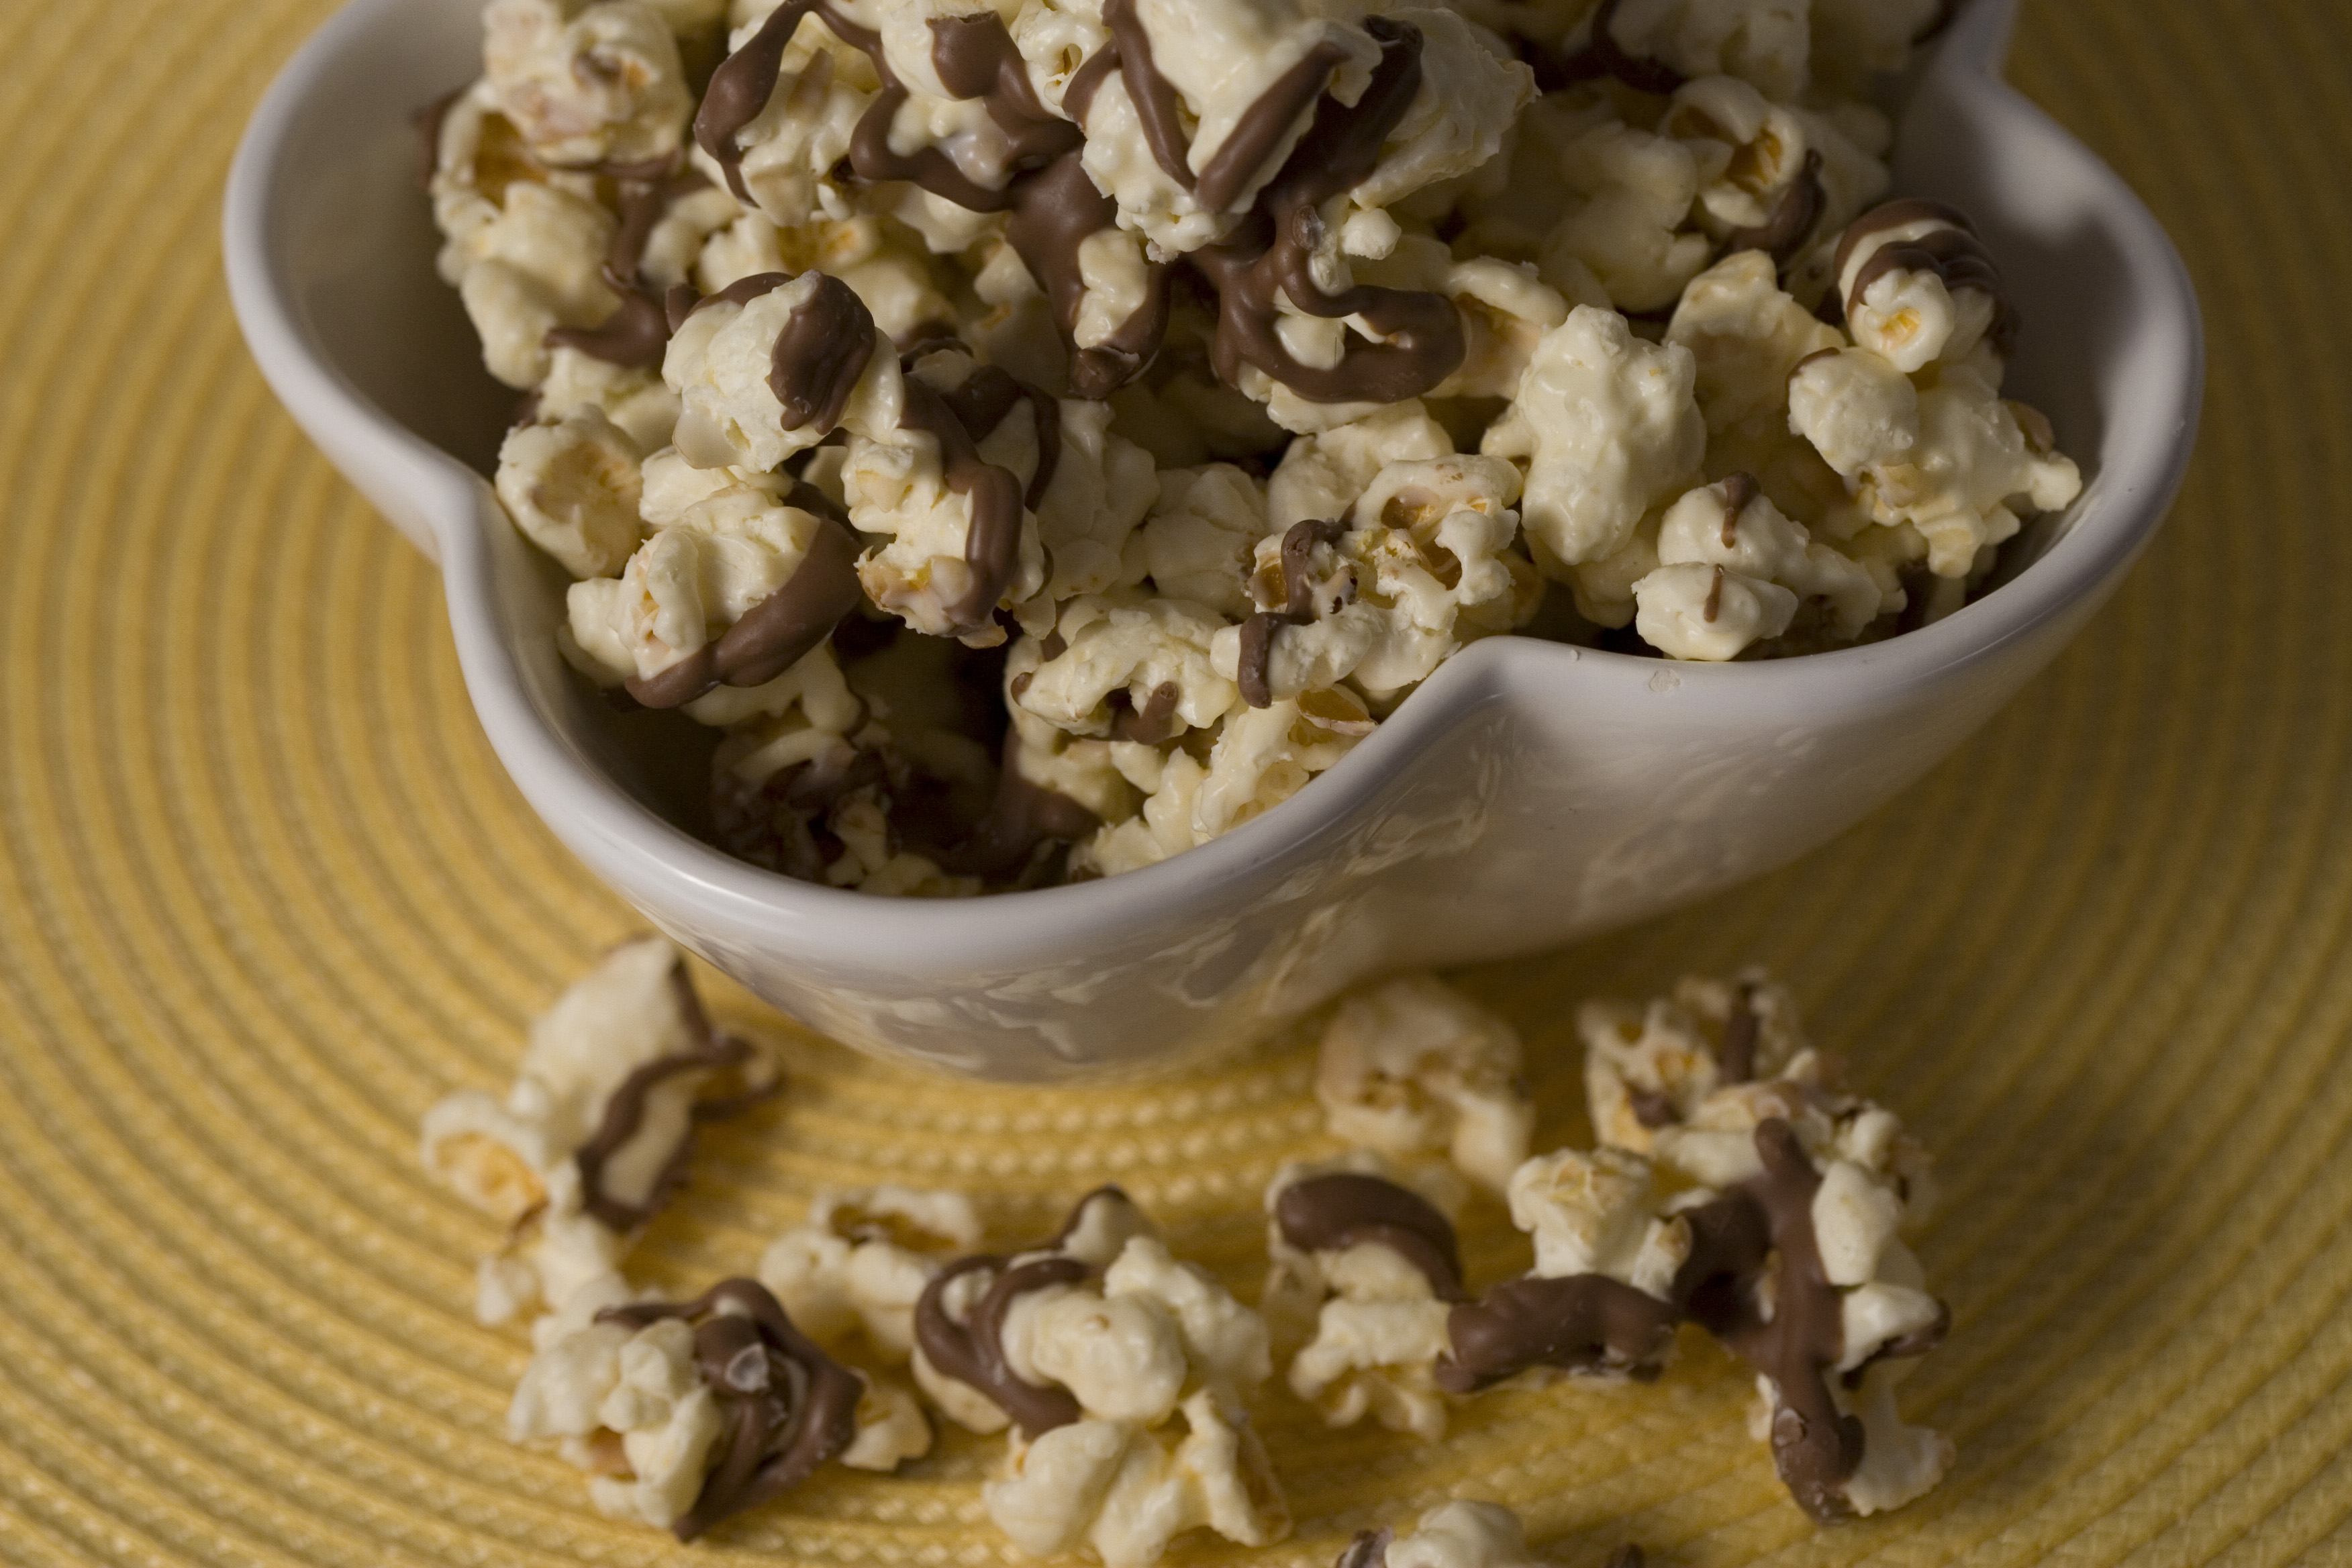 Michele's Sweet Shoppe, LLC dba Michele's Totally Awesome Gourmet Popcorn